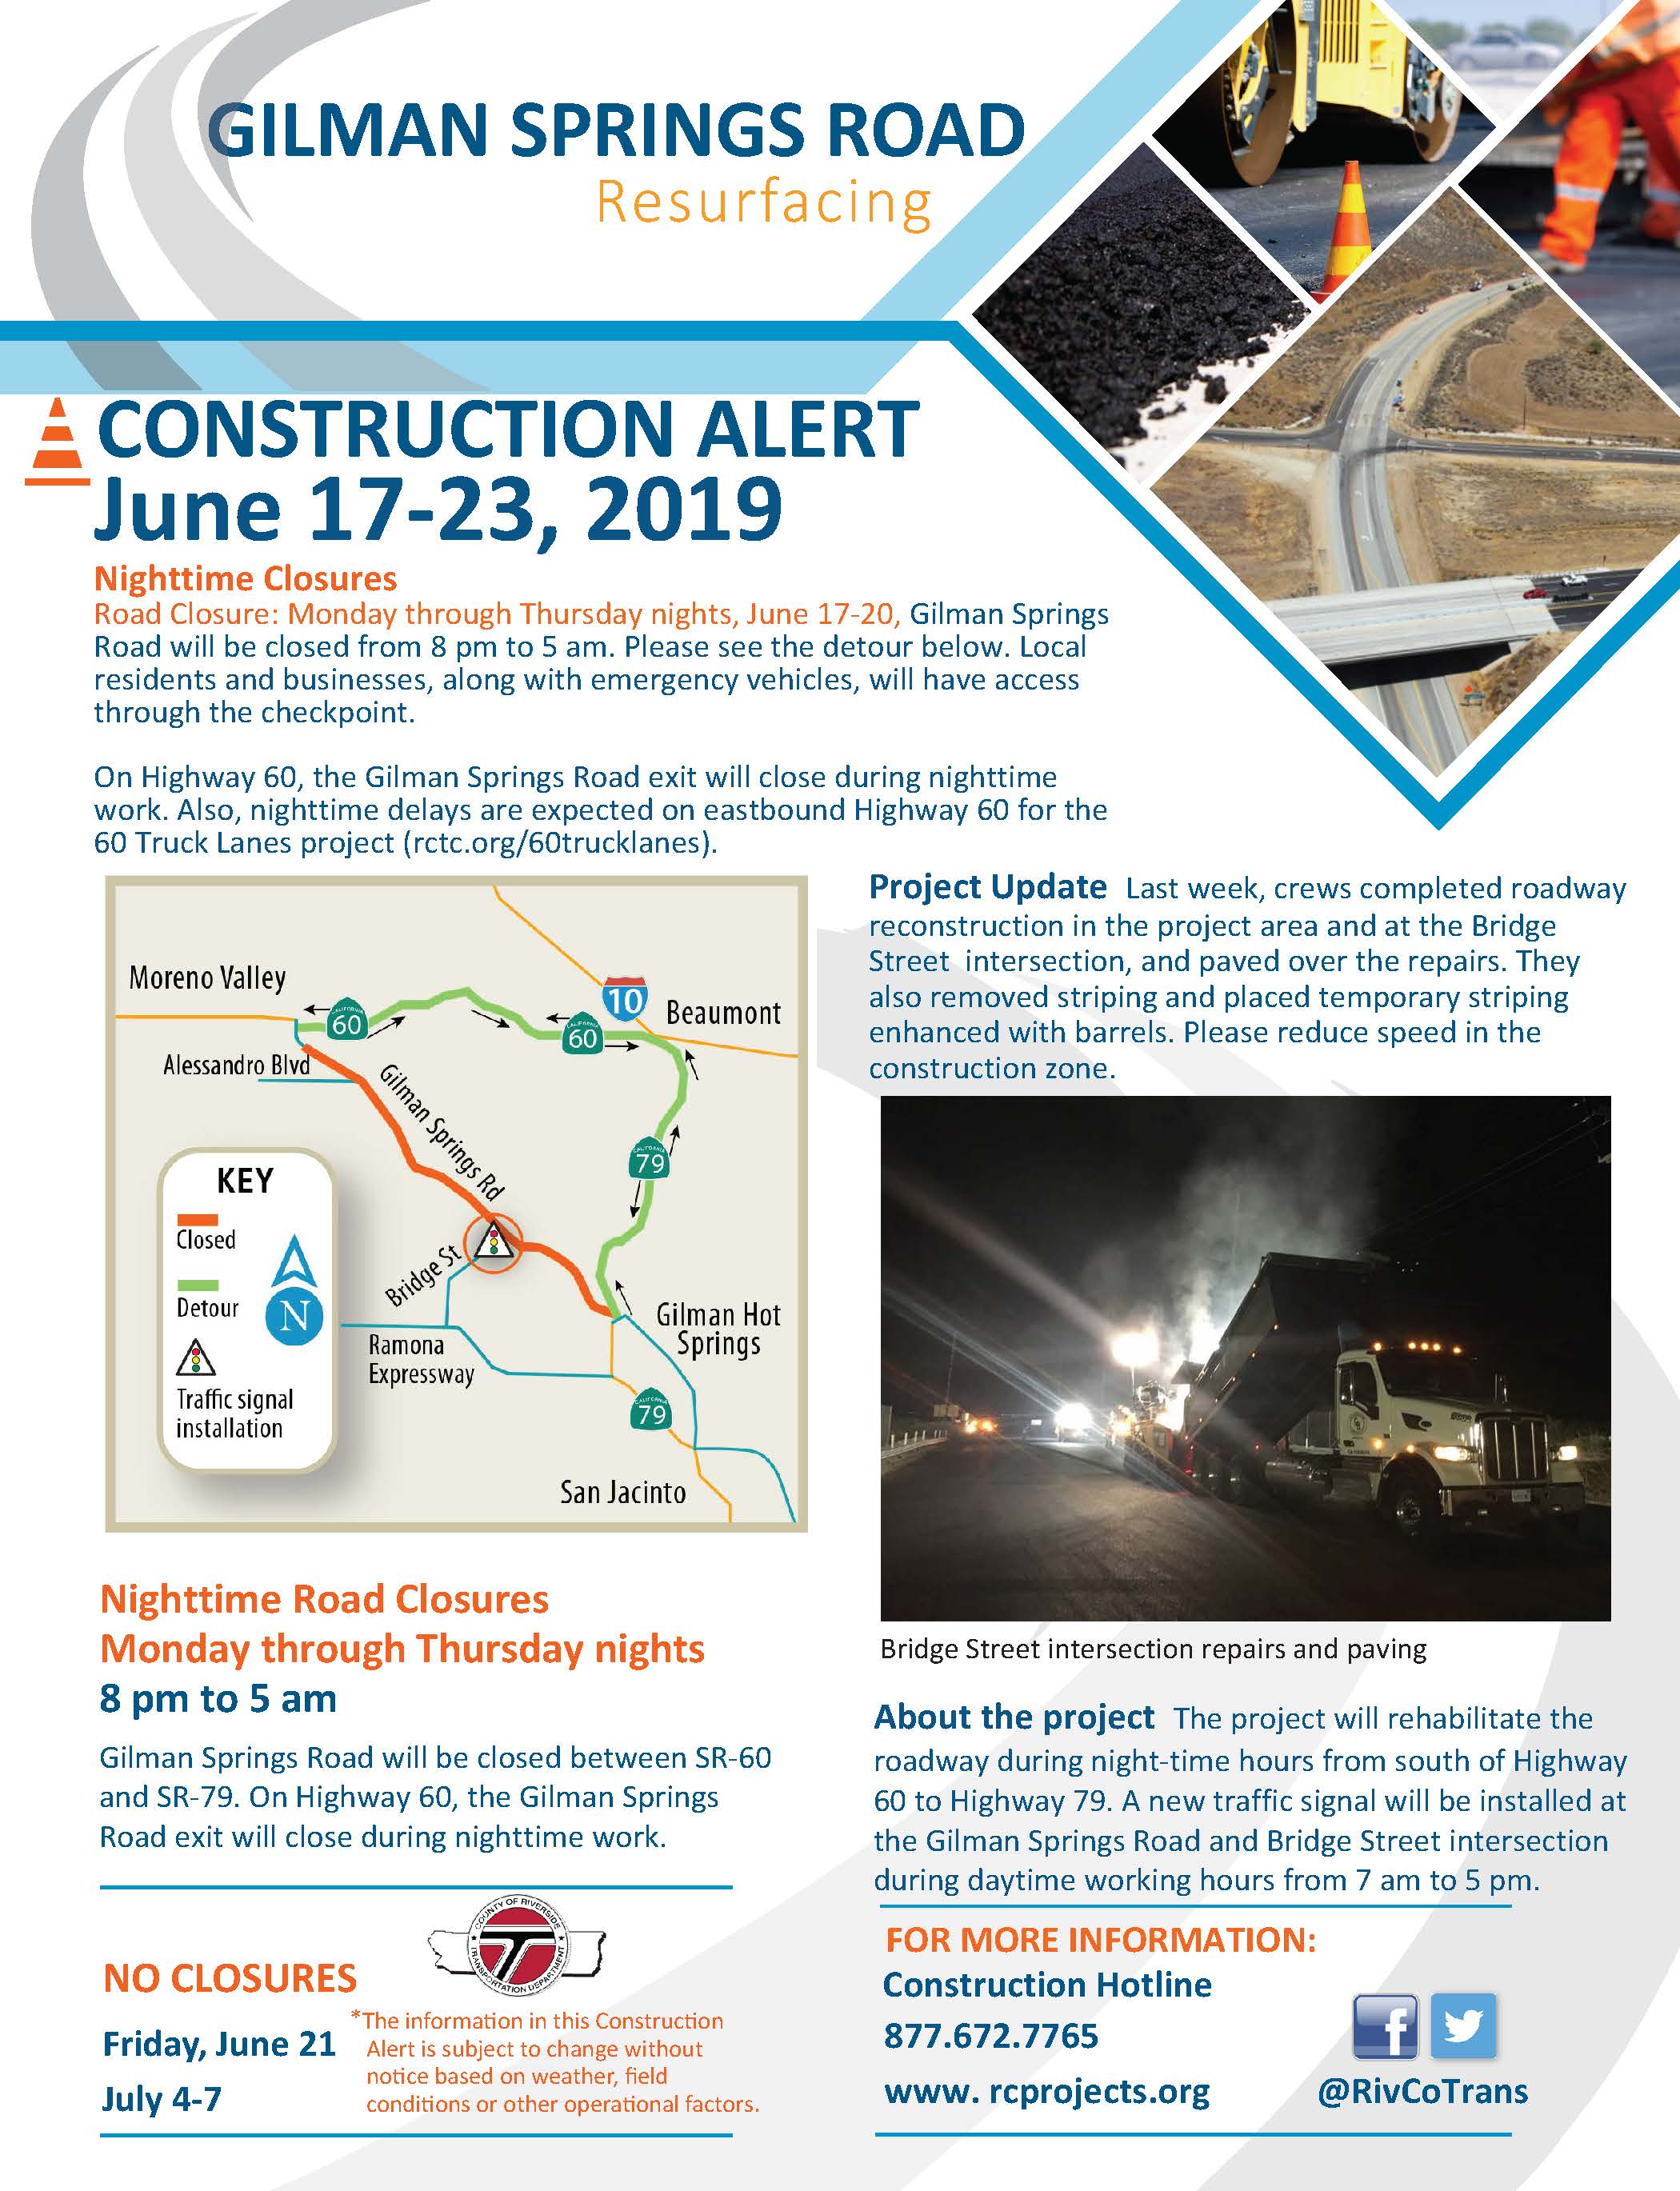 Construction Alert flyer for June 17-23, 2019